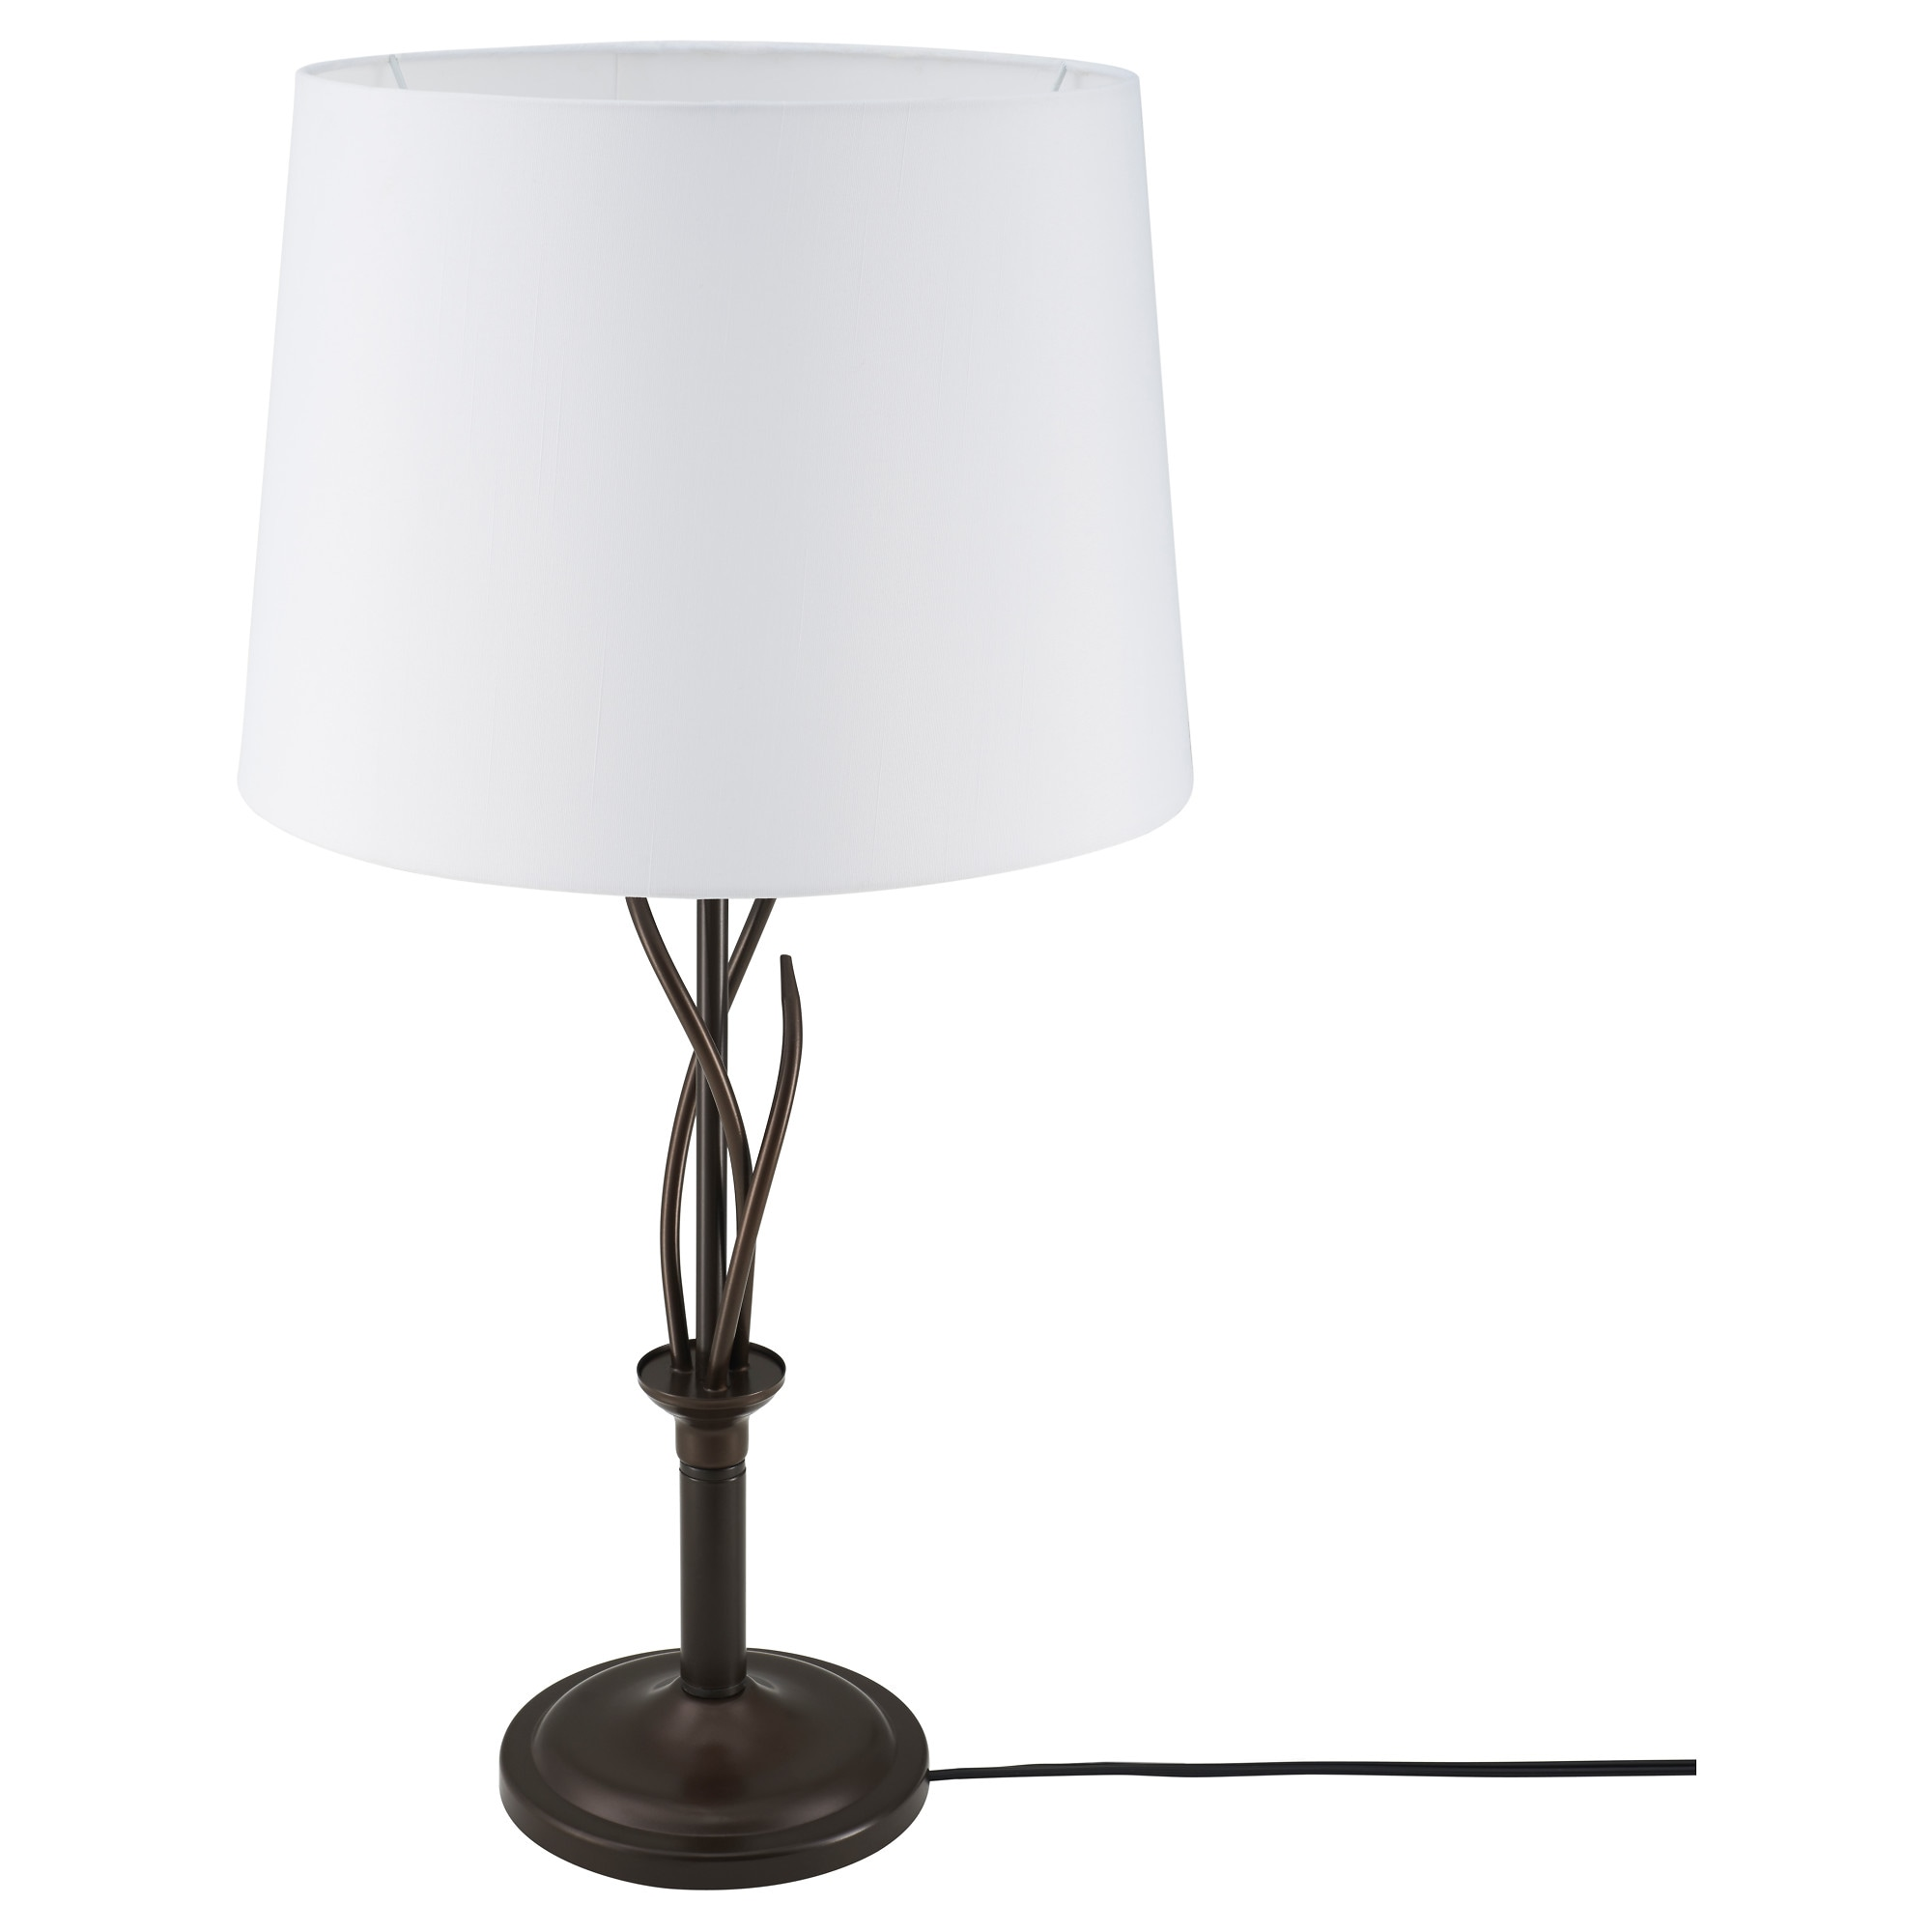 lamps options interior to designs beautiful usa lamp table some